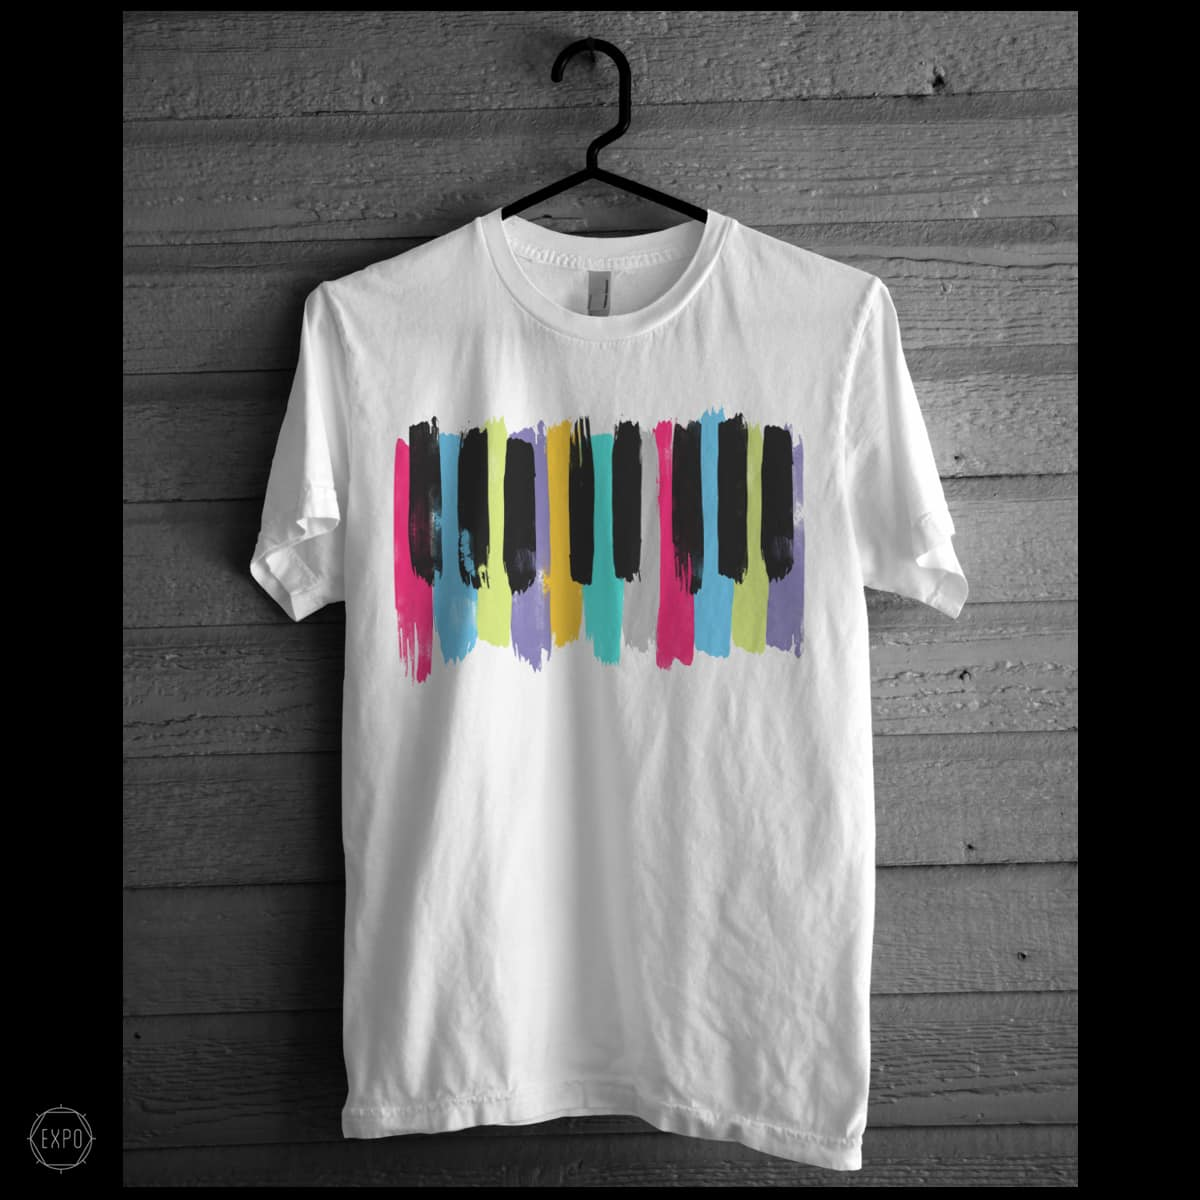 Music Colors by expo on Threadless